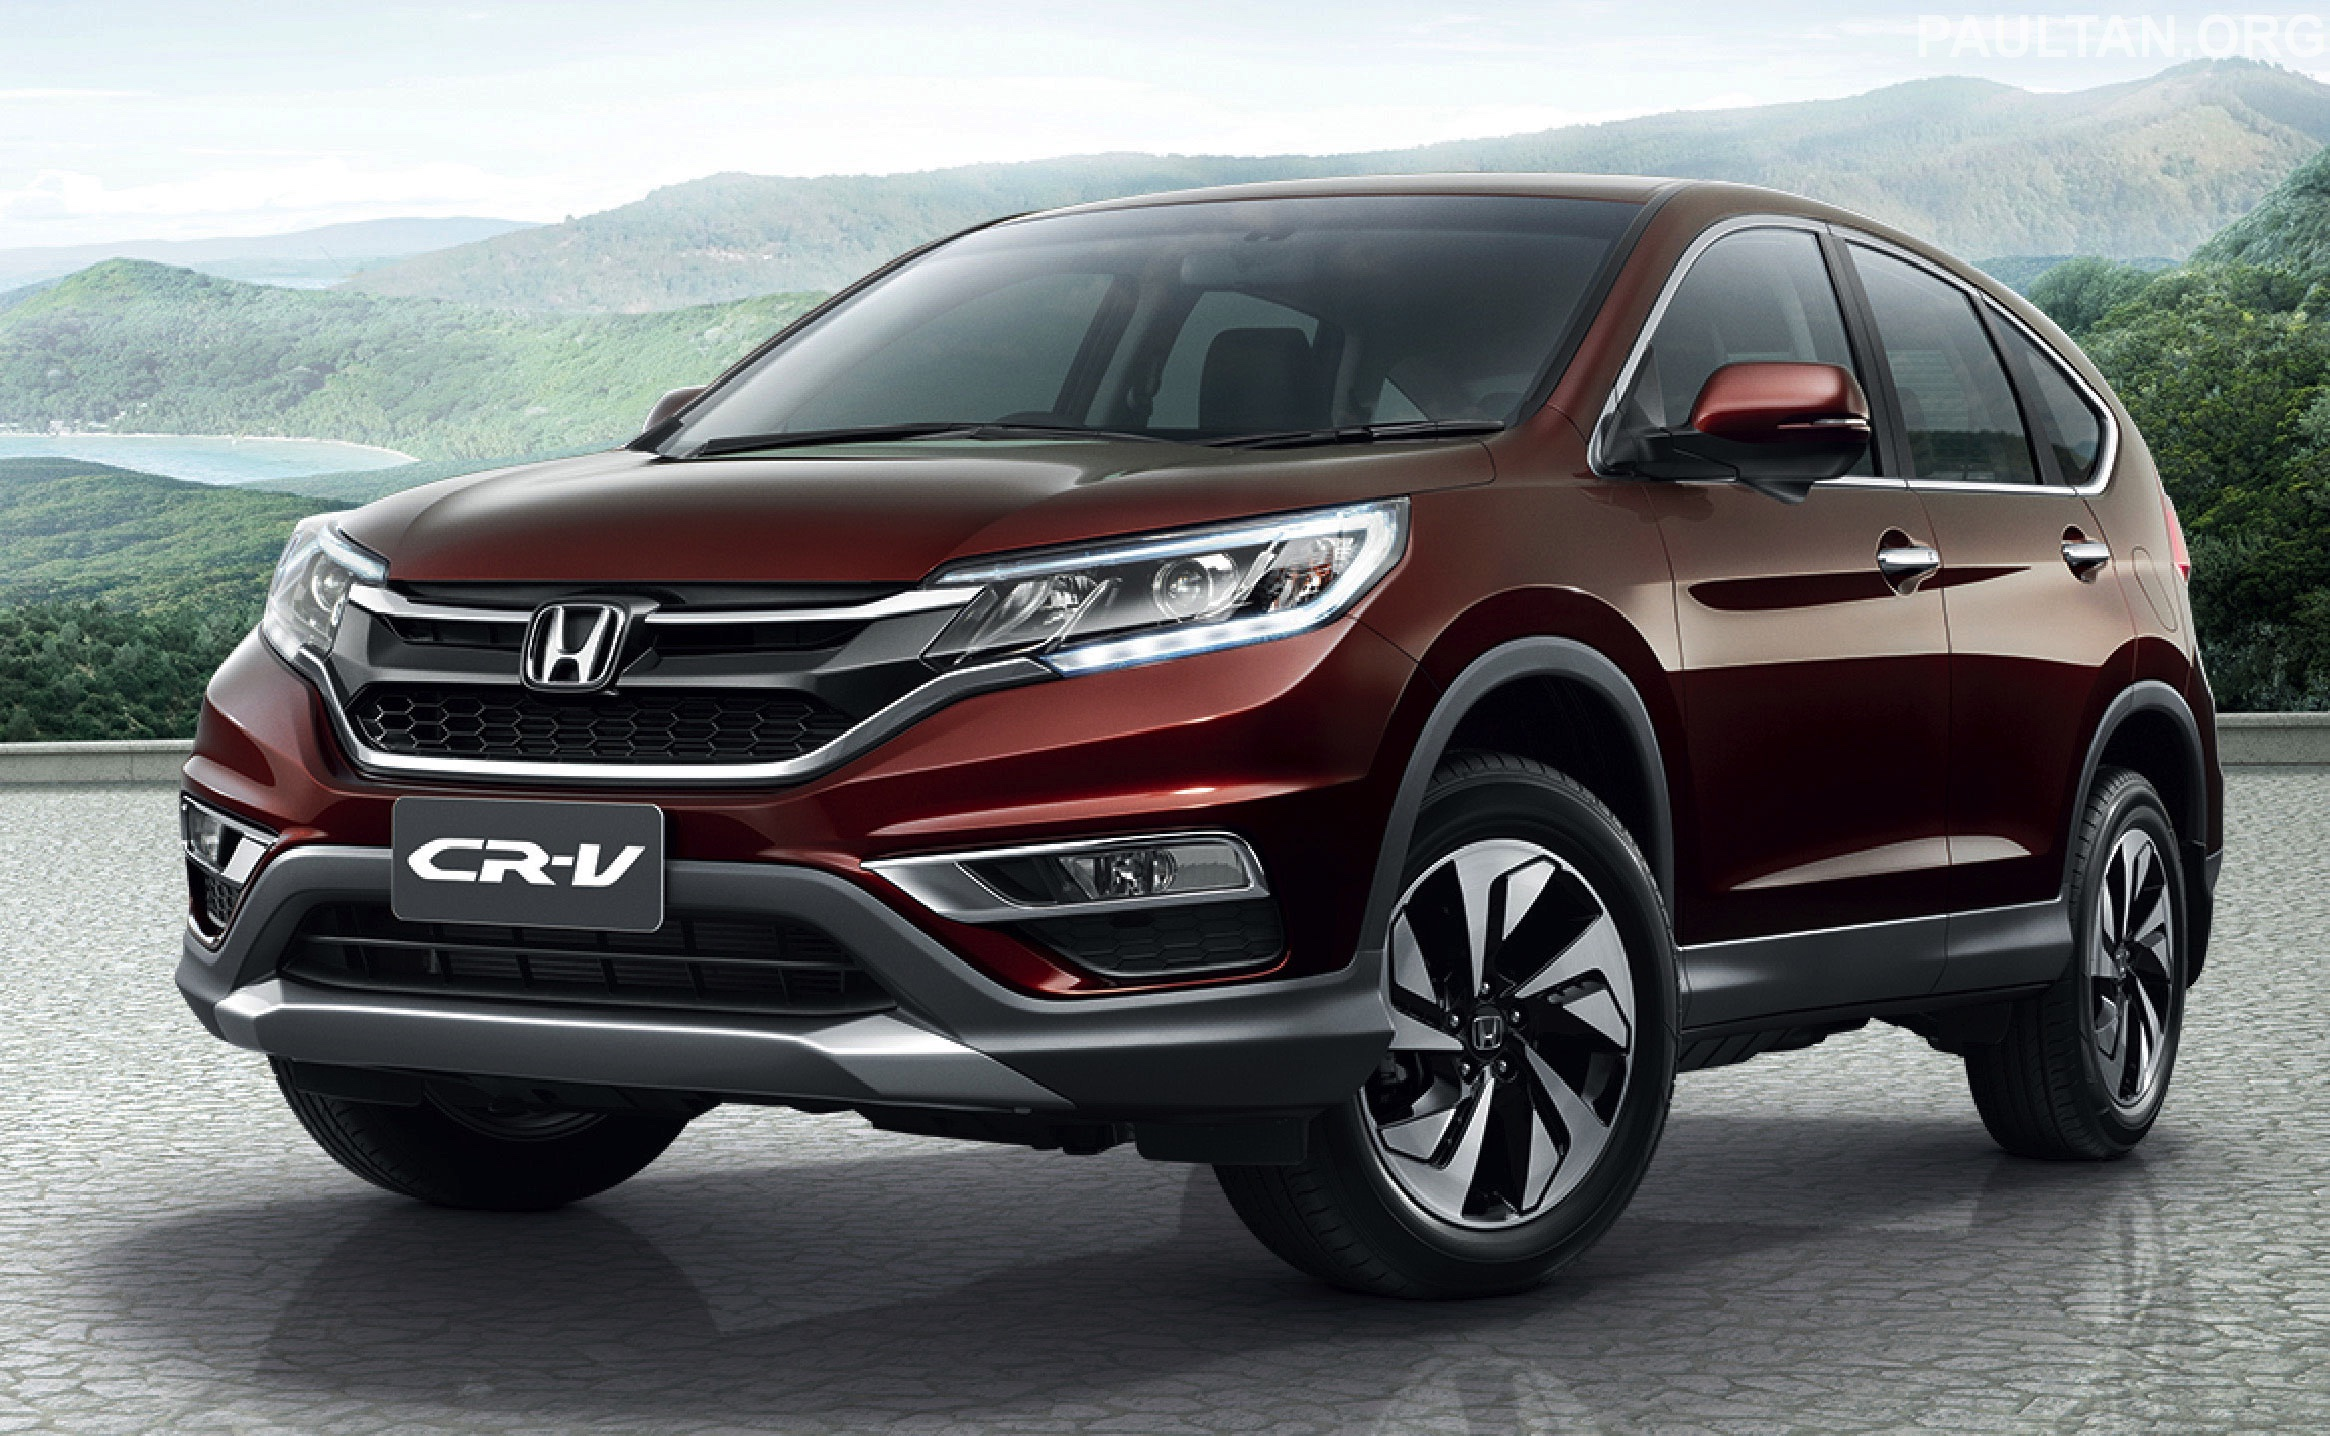 2015 honda cr v facelift asean version unveiled in thailand 2 4 litre variant gets cvt. Black Bedroom Furniture Sets. Home Design Ideas